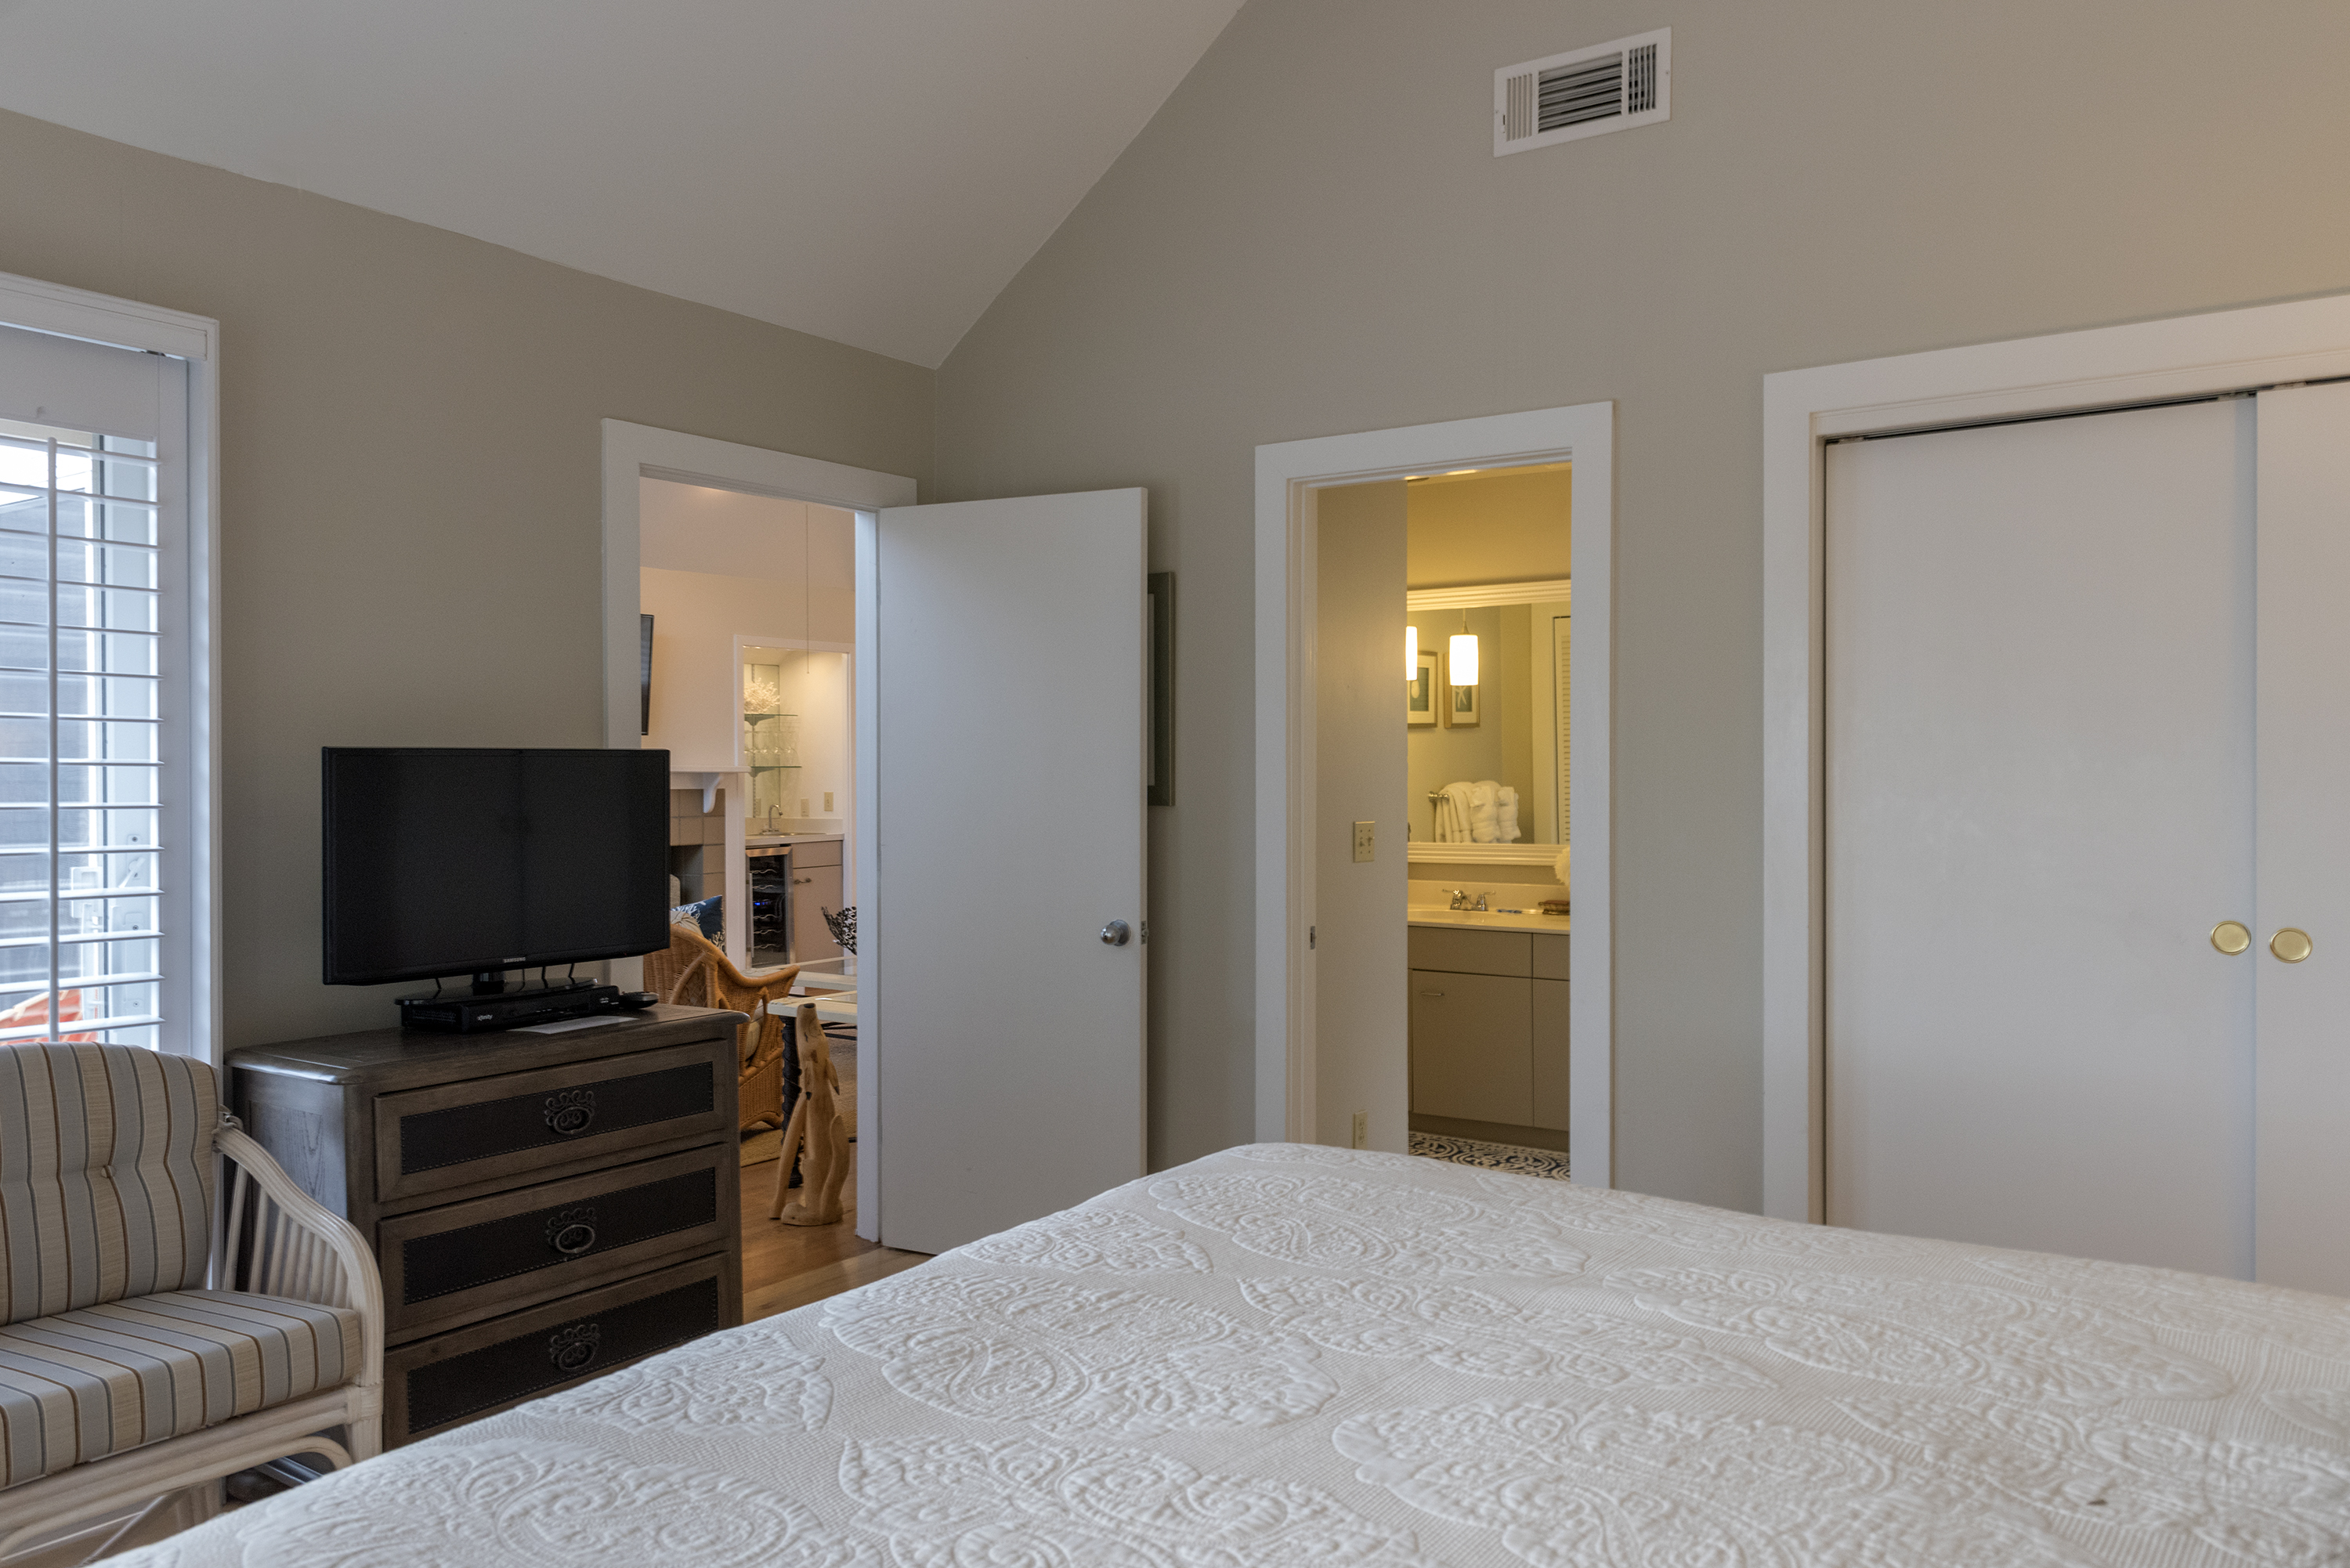 The master has a reading area, HDTV, large closet and an en-suite bath.